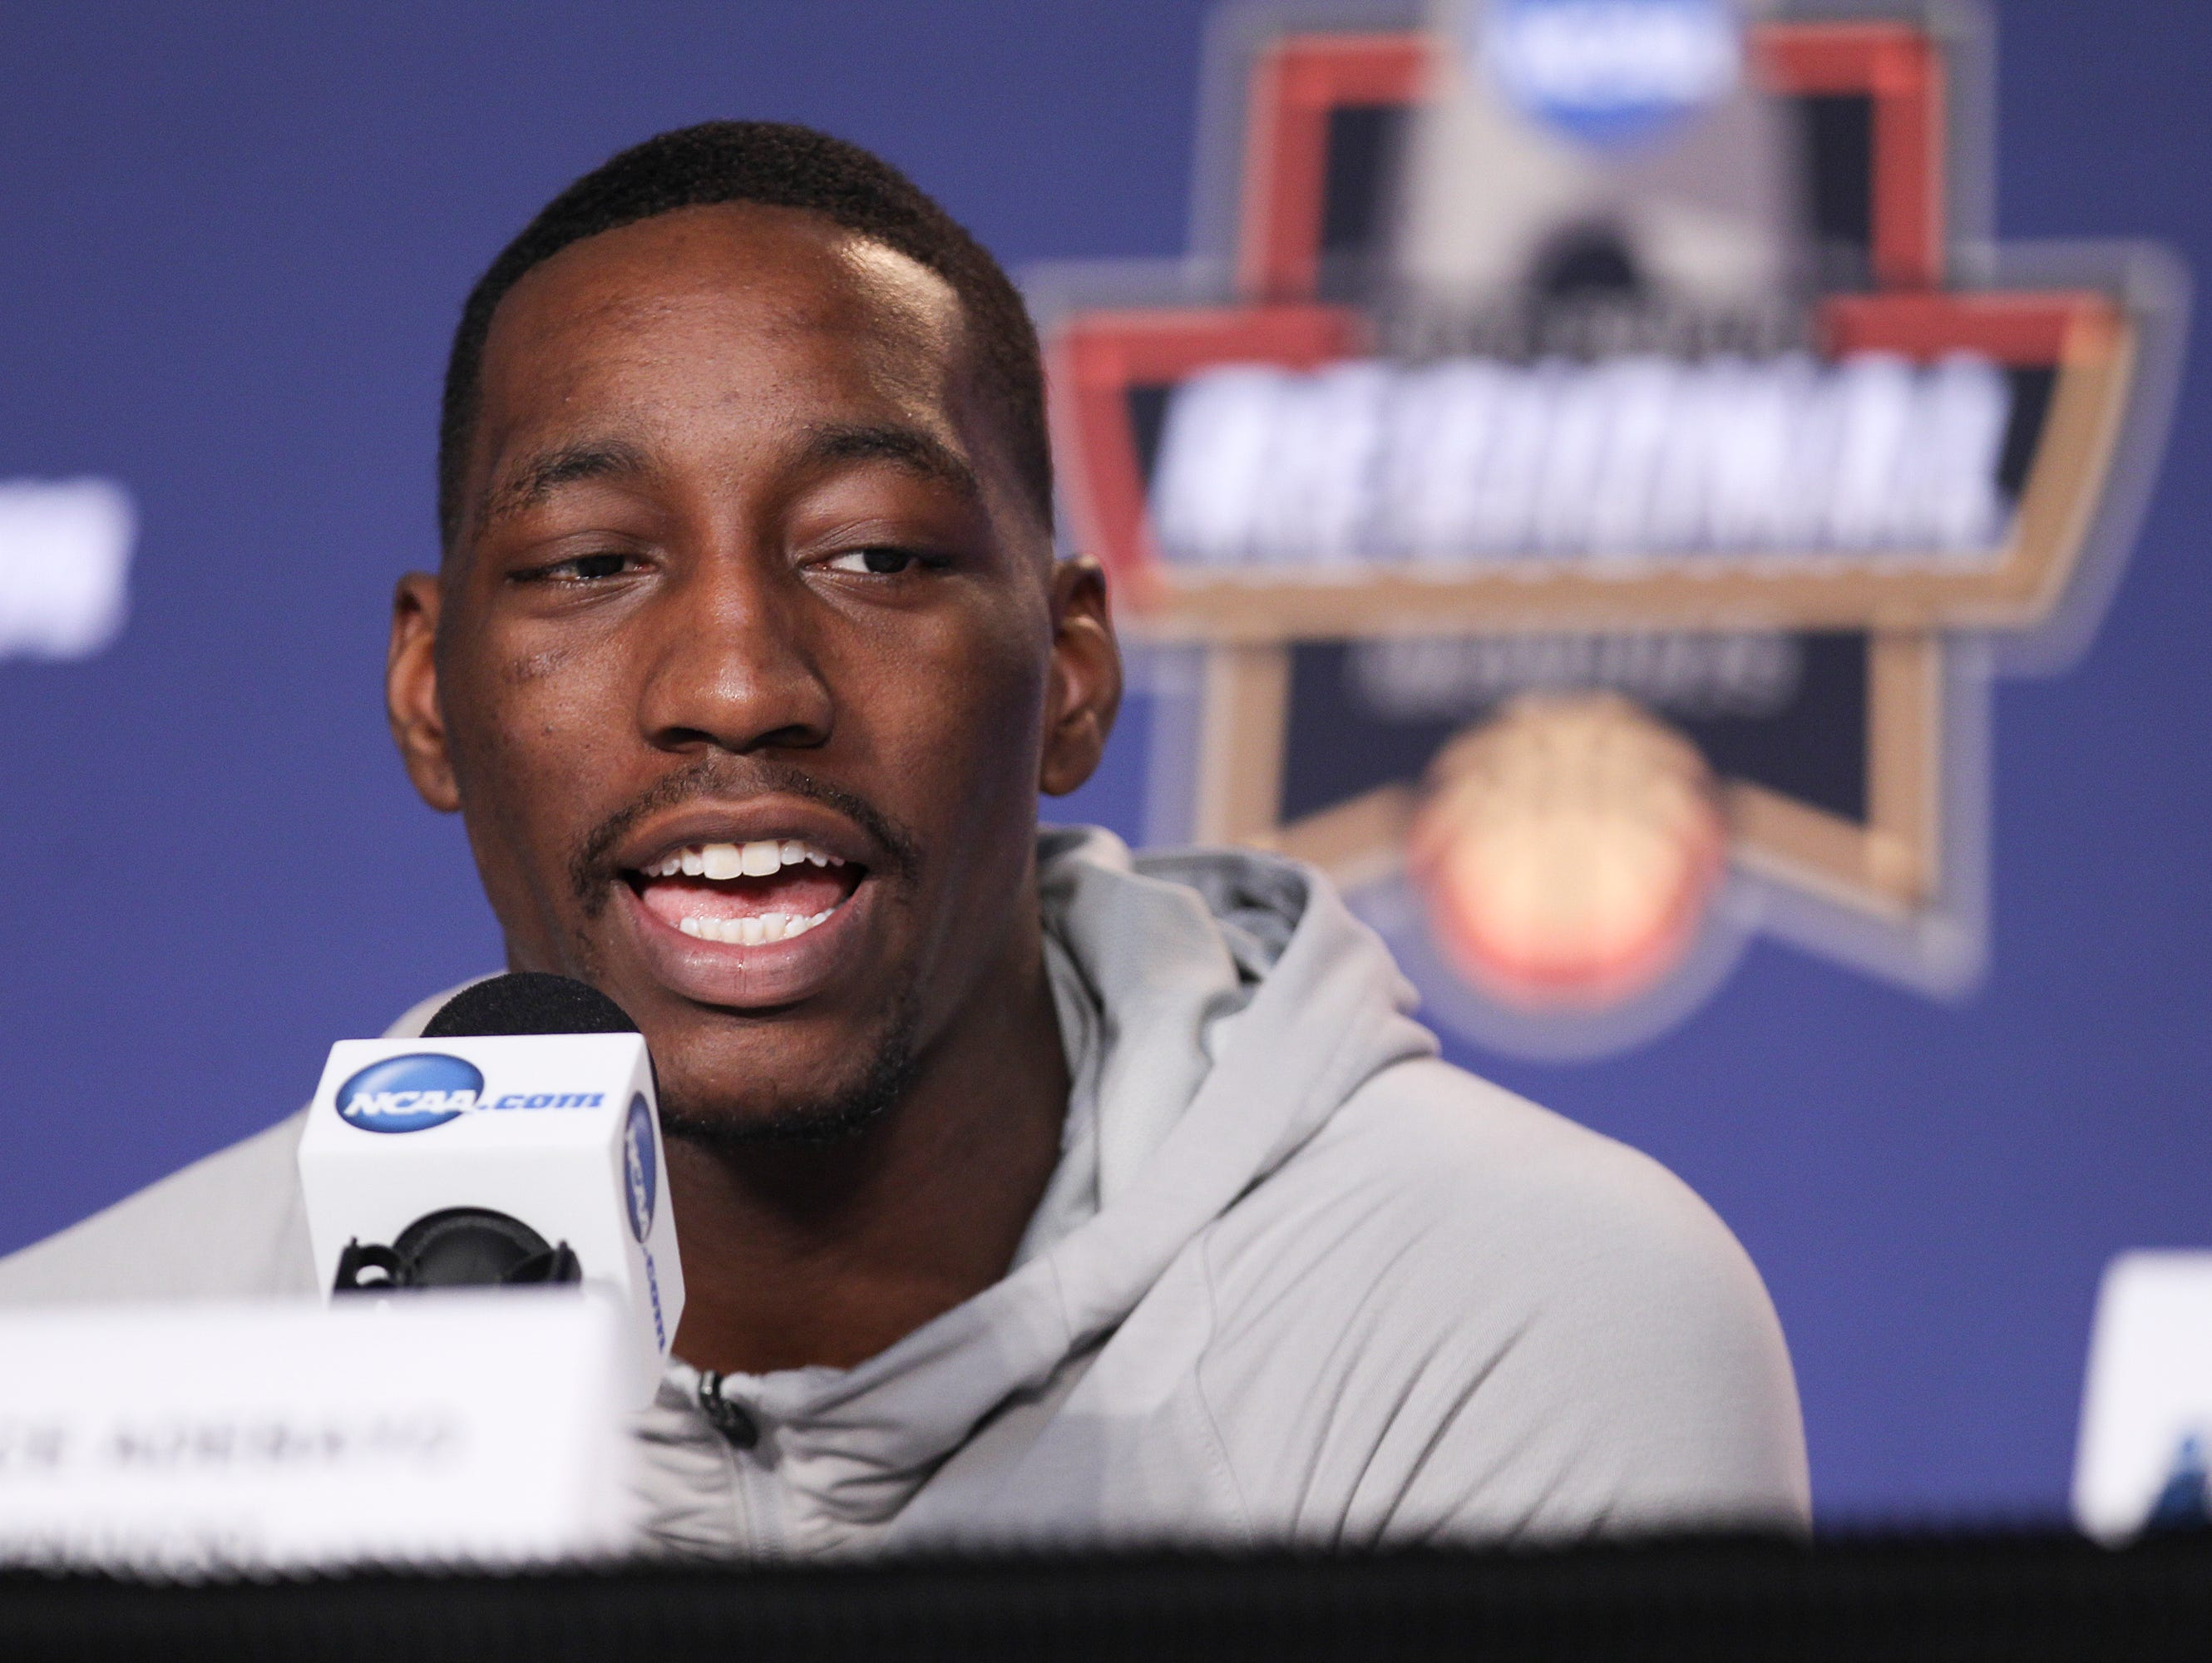 Bam Adebayo answers a question on the dais during off-day press conferences Saturday in Memphis. The Cats will take on North Carolina Sunday afternoon in Memphis to advance to the Final Four. March 25, 2017